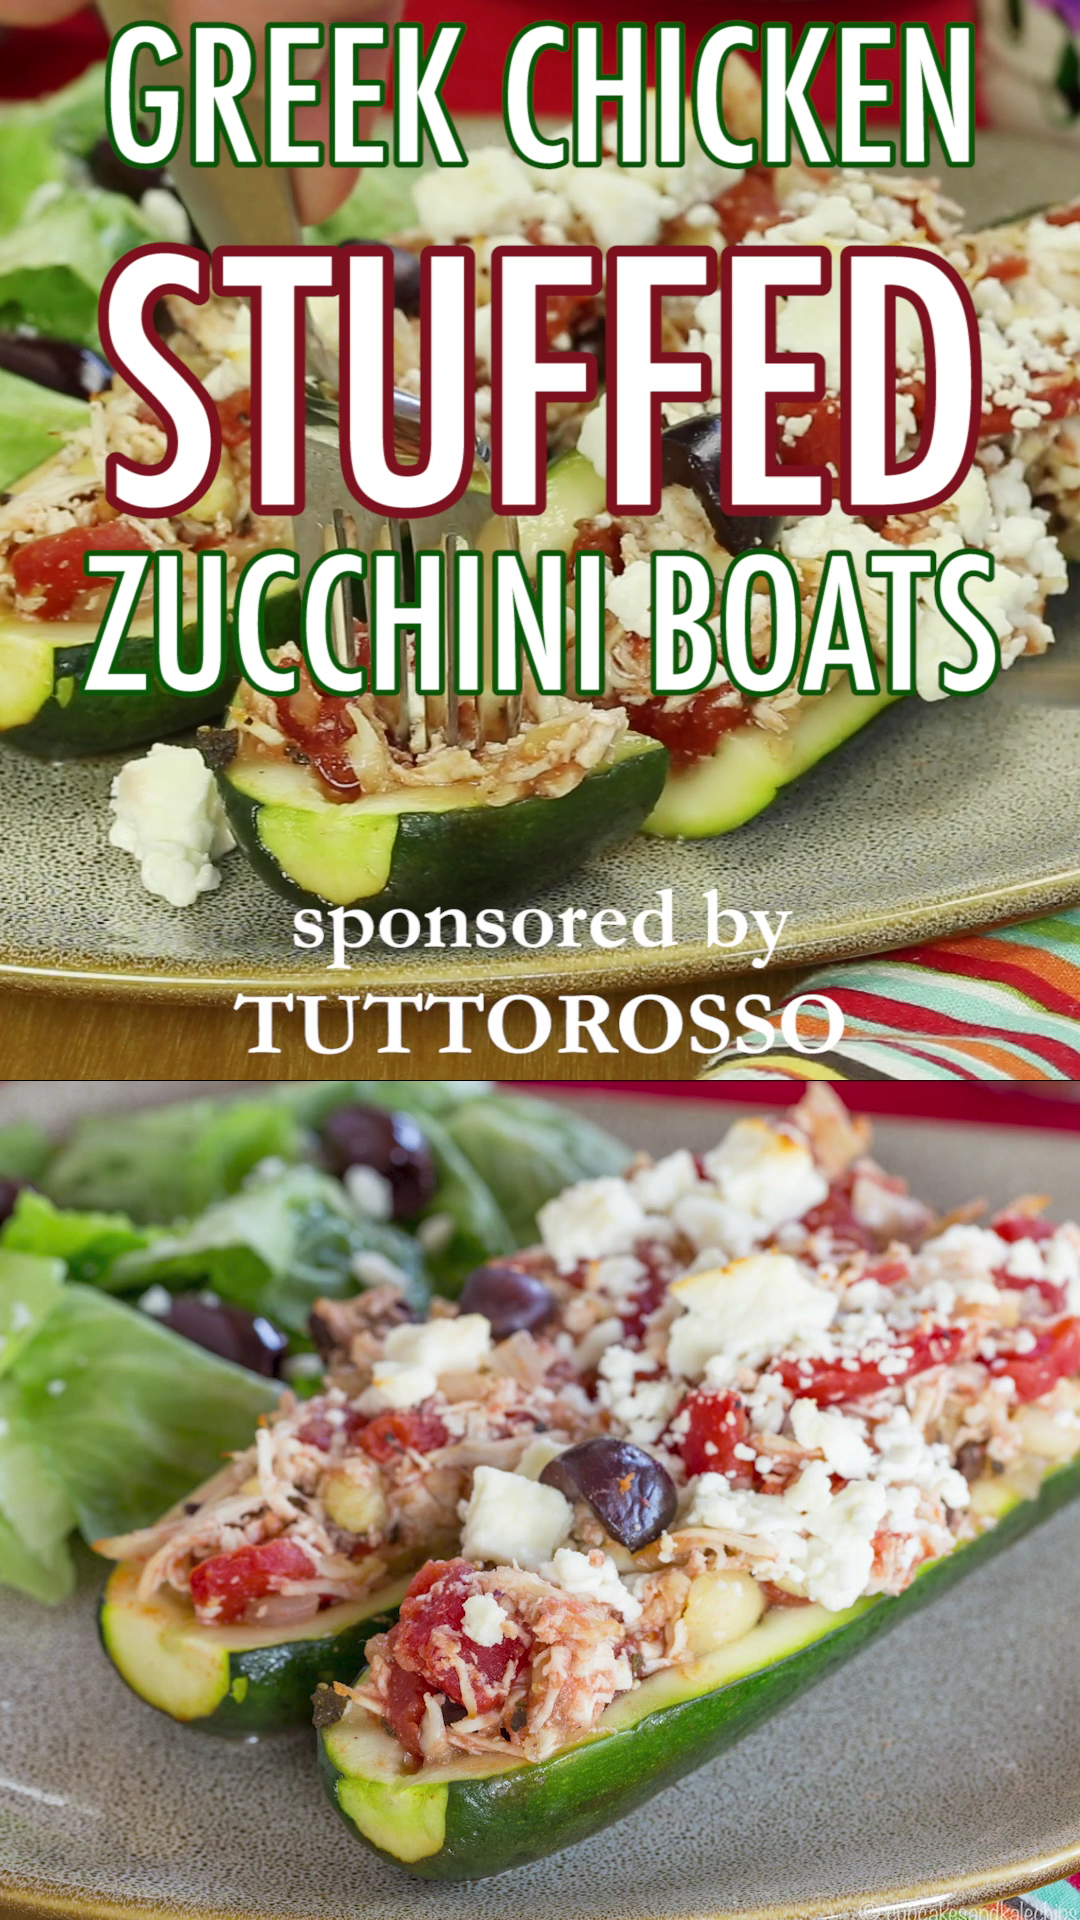 Greek Chicken Stuffed Zucchini Boats is part of Chicken zucchini - Baked Greek Chicken Stuffed Zucchini boats get a Mediterranean flair for a healthy dinner recipe packed with fresh ingredients and bold flavors